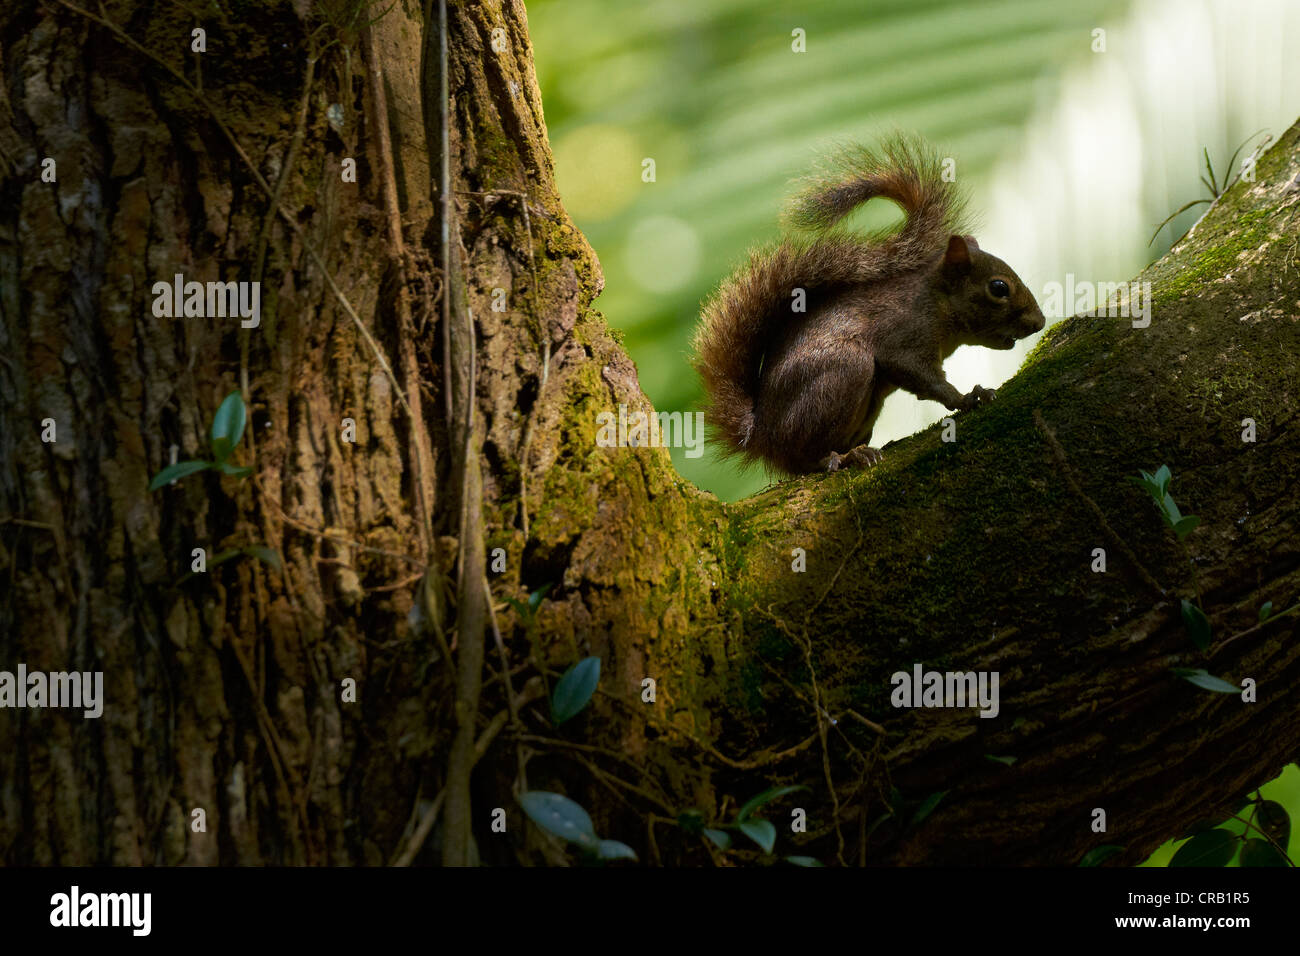 Squirrel in the fork of a tree - Stock Image